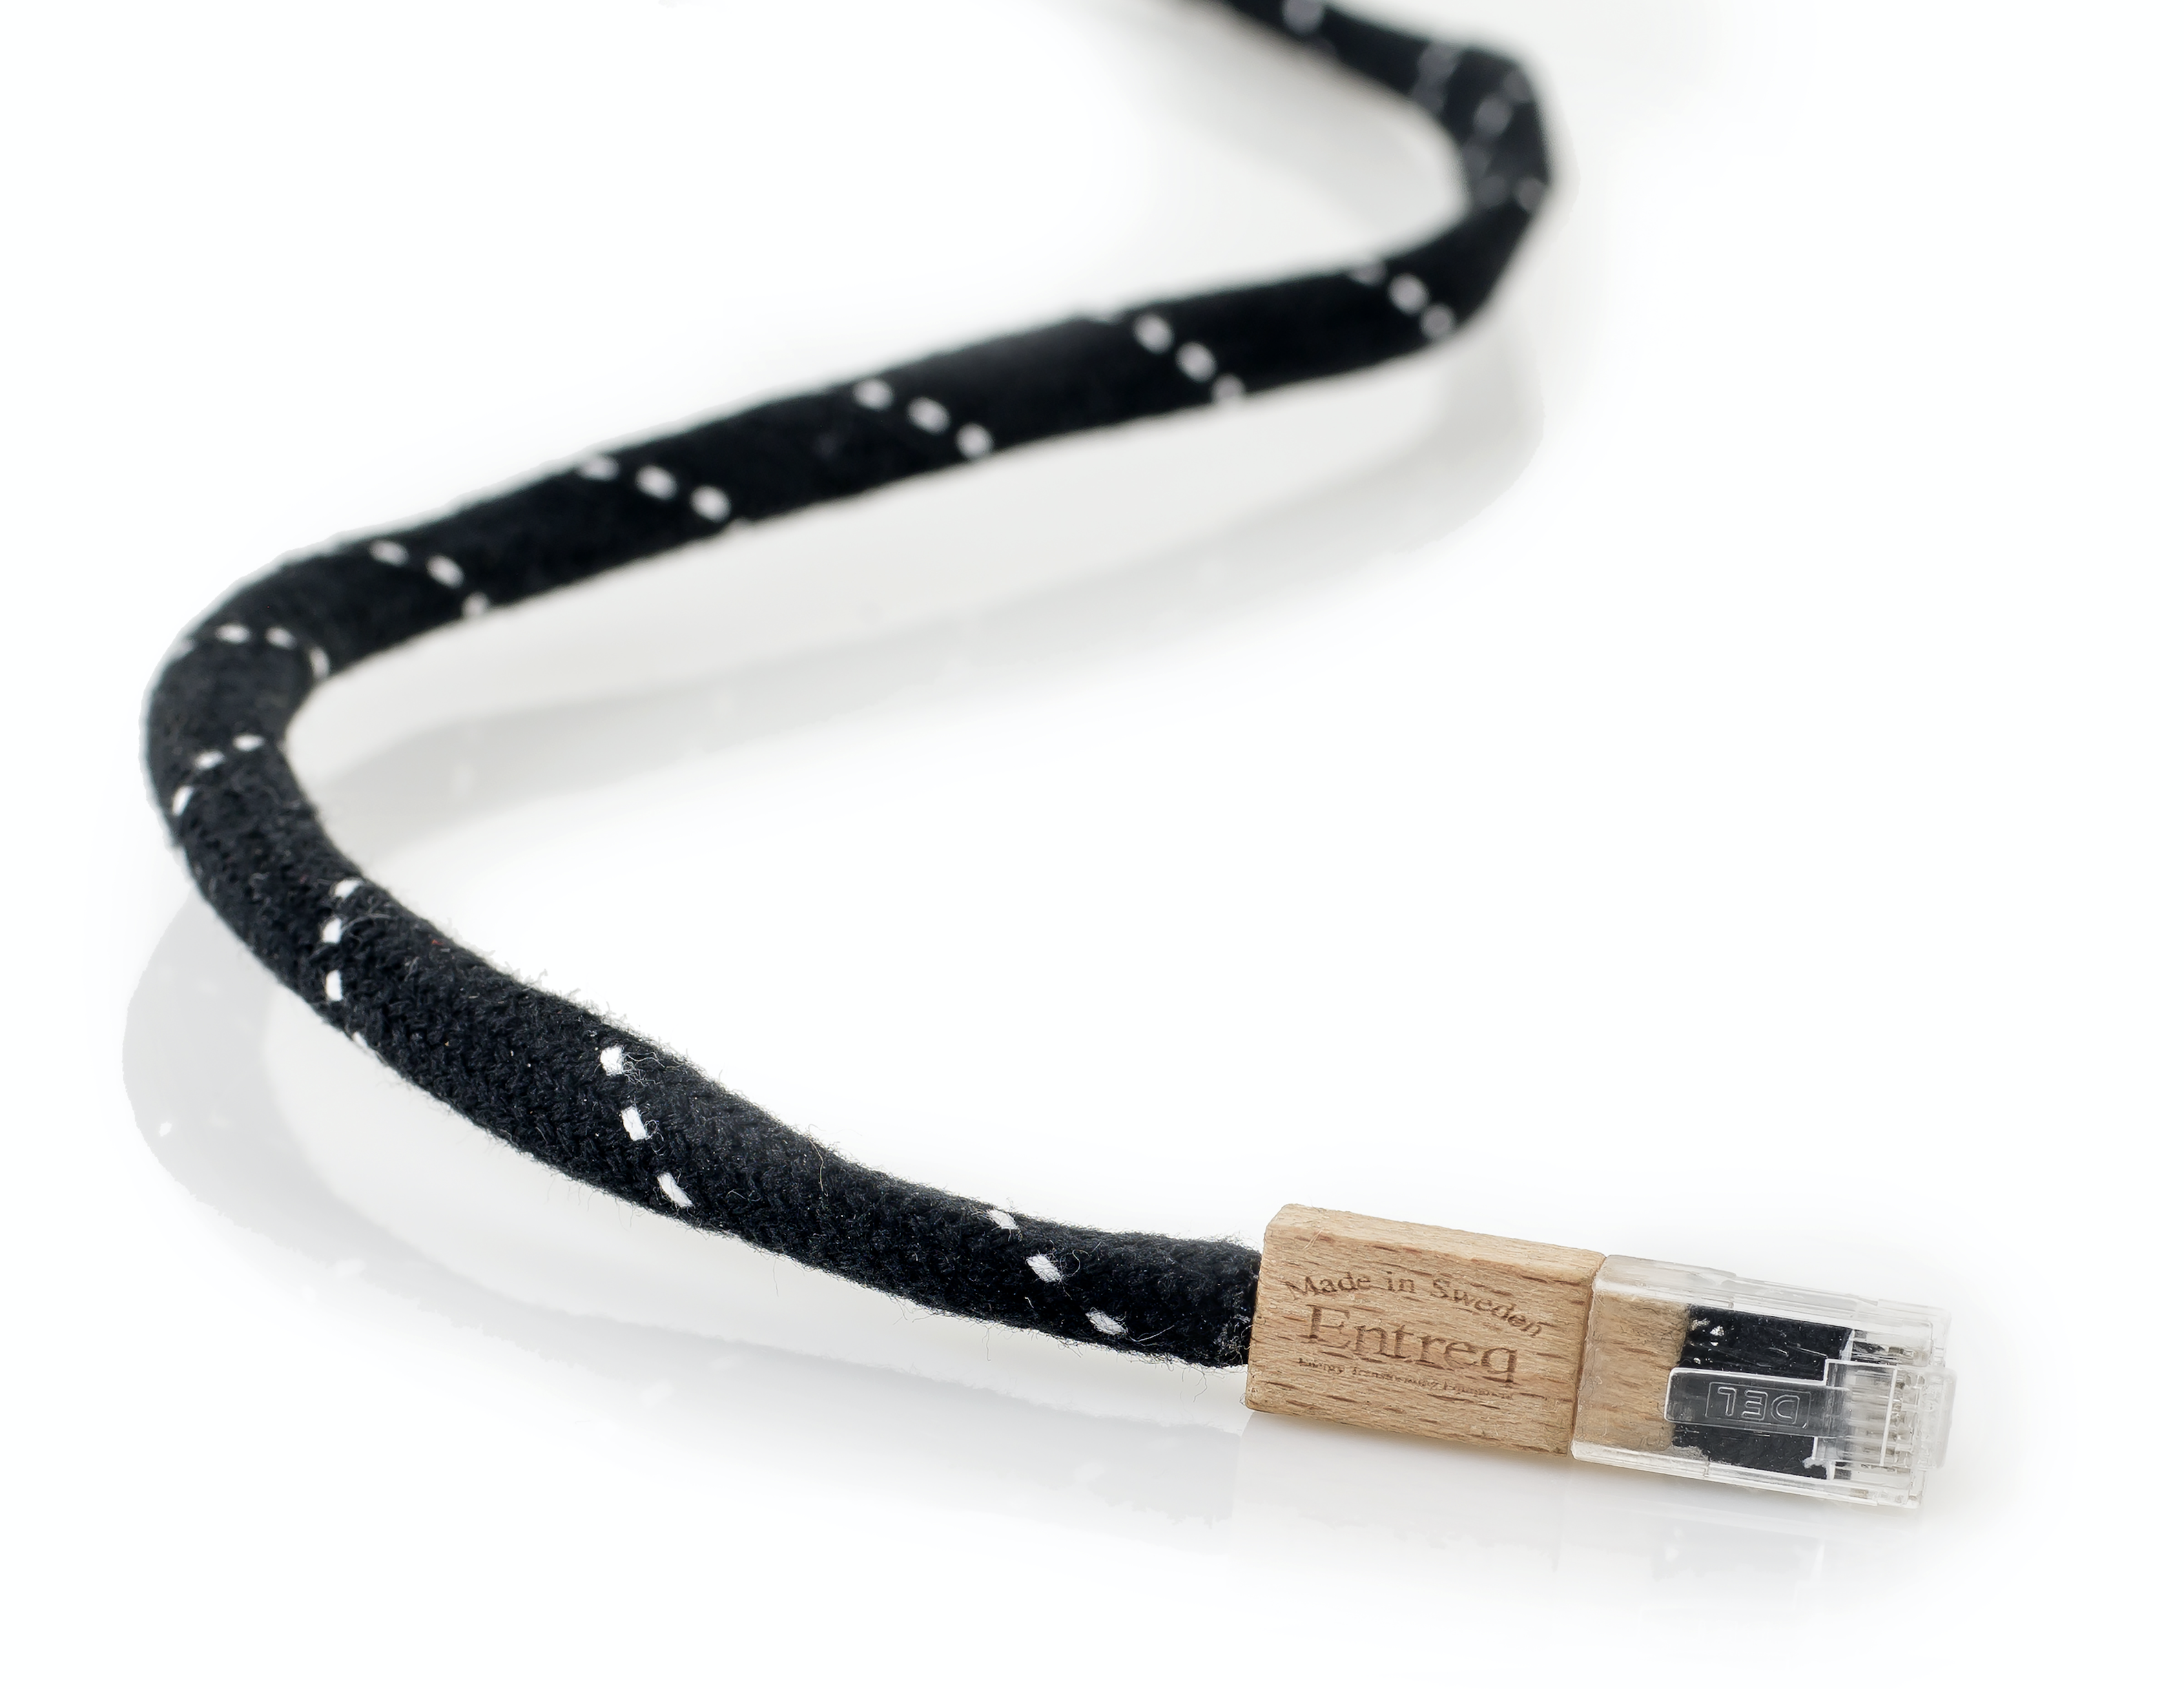 Entreq Infinity Apollo RJ45 Cable @ Audio Therapy